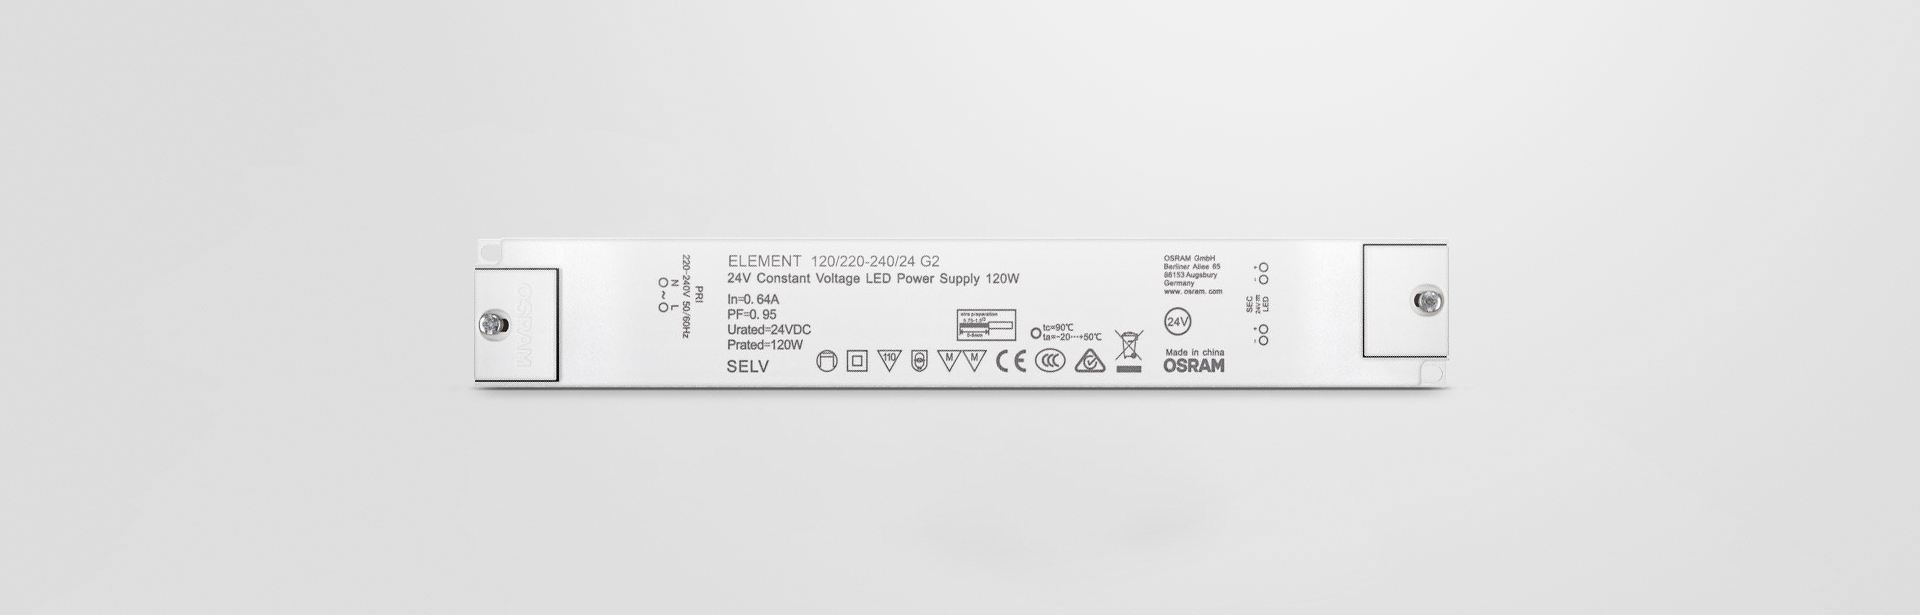 High efficiency (up to 91 %) Higher quality of light thanks to < 3% output ripple current Excellent price/performance ratio Class II design for wide application 3-year warranty